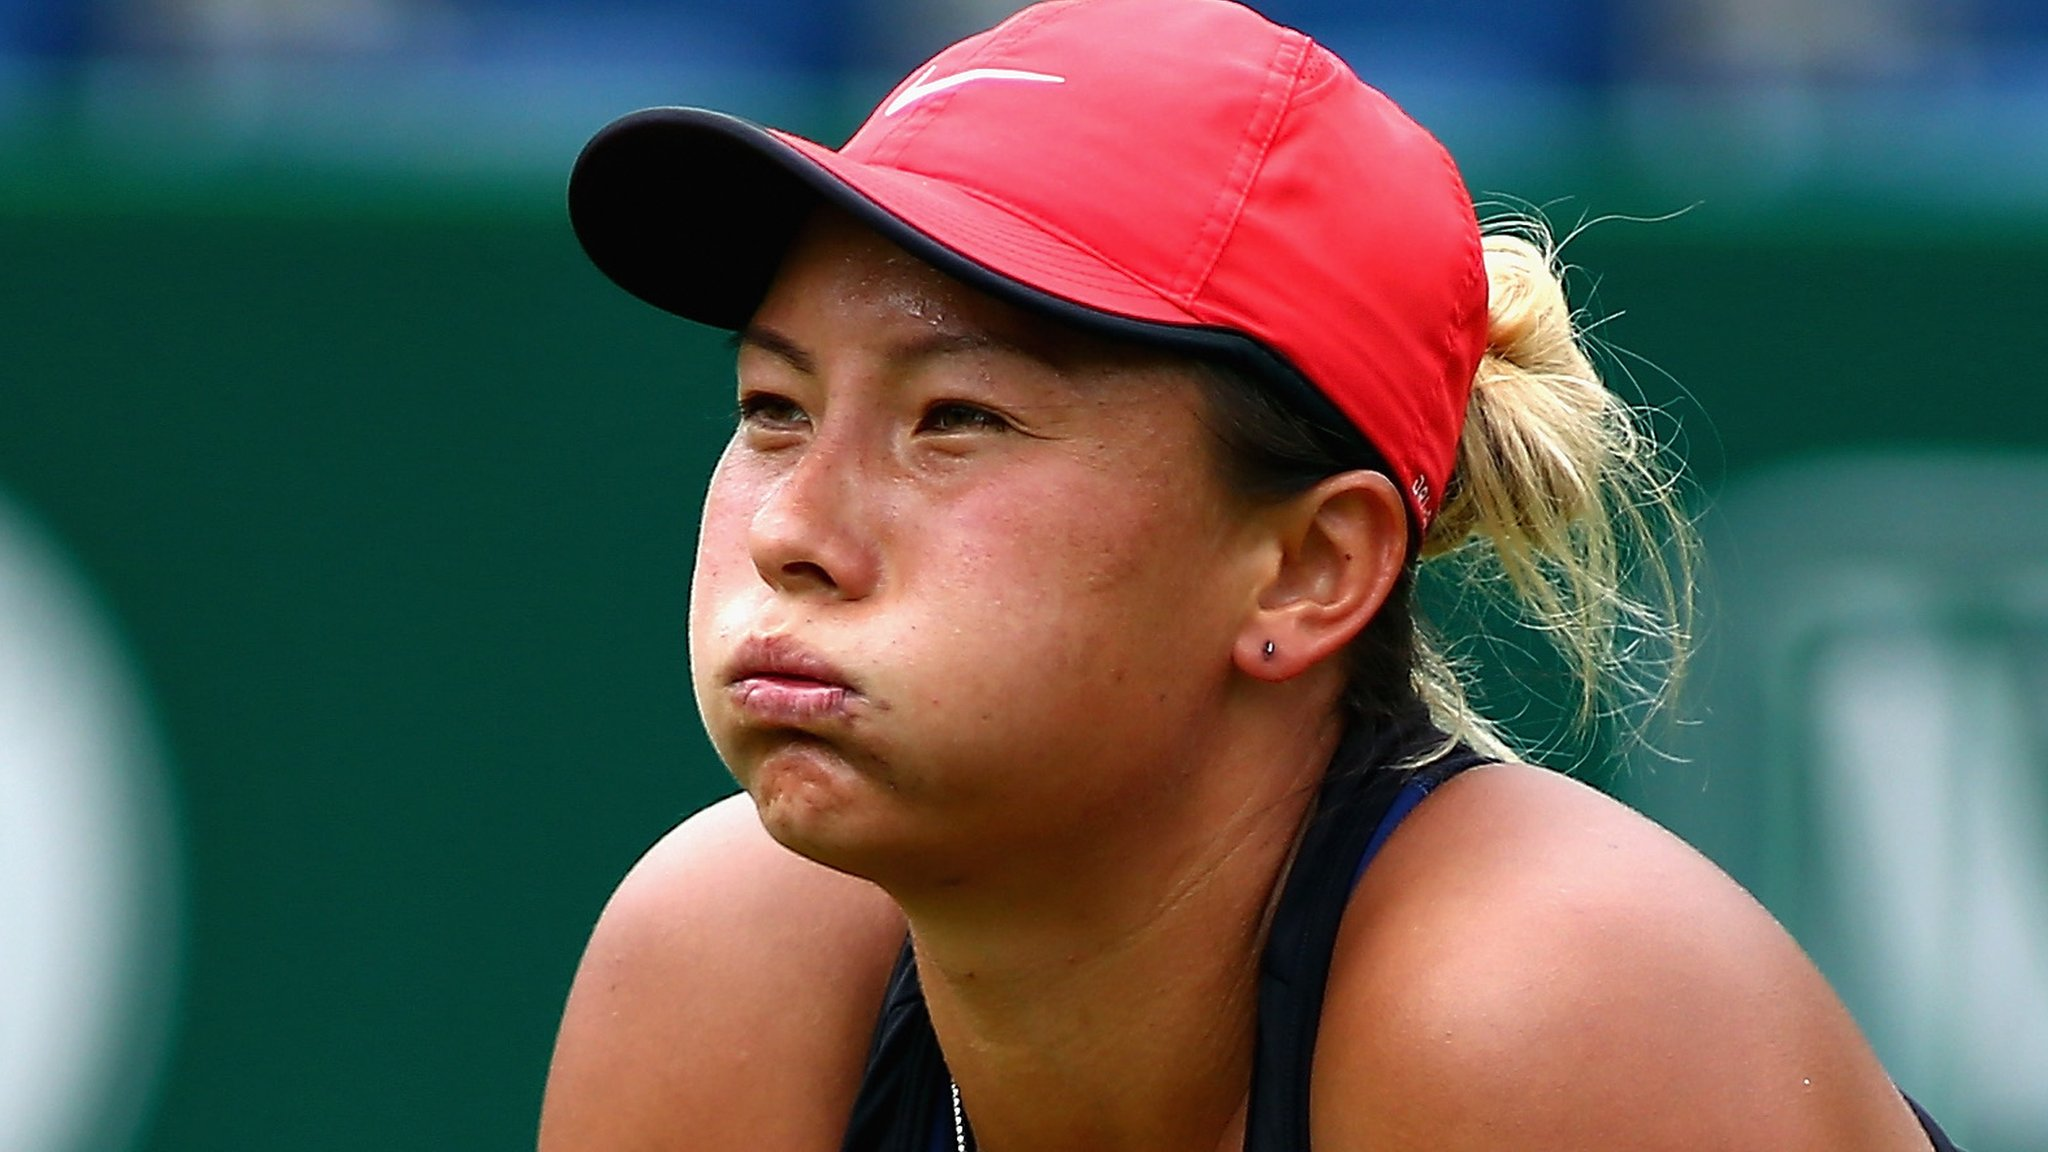 'Never in doubt' - Match point down at 0-6 0-5, Moore comes back to win